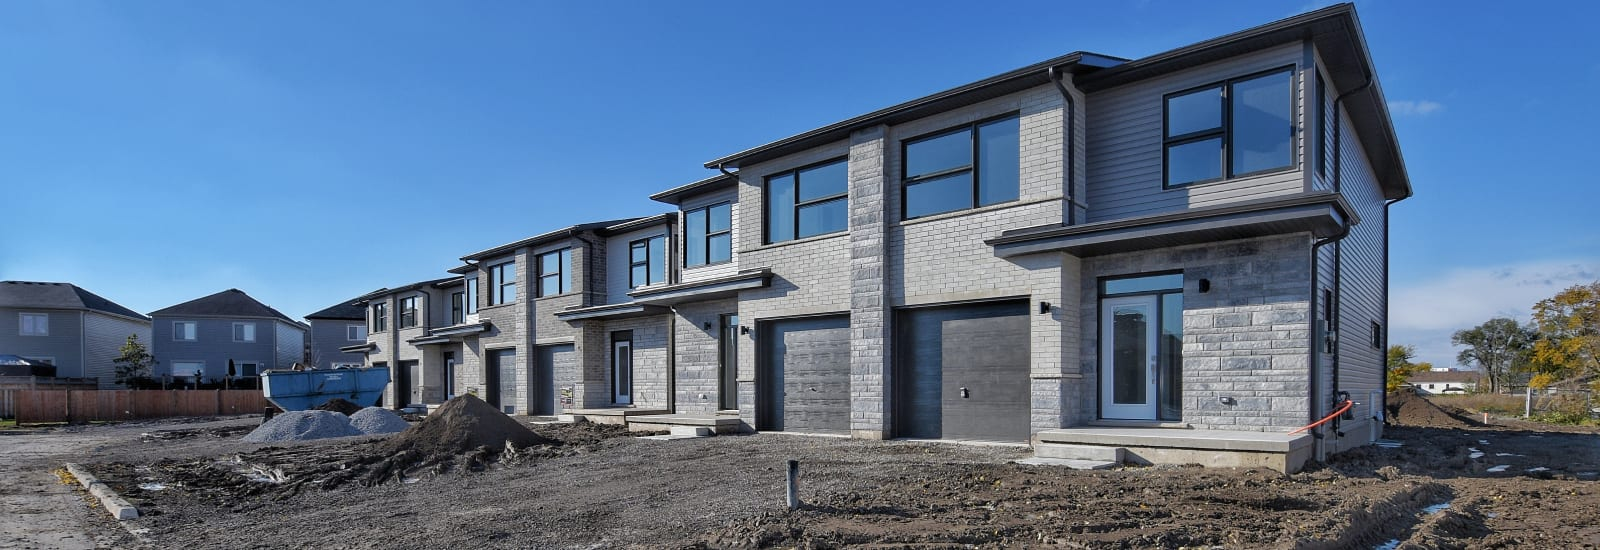 Building Projects with Cairnwood Homes, Subdivision Builders in Niagara